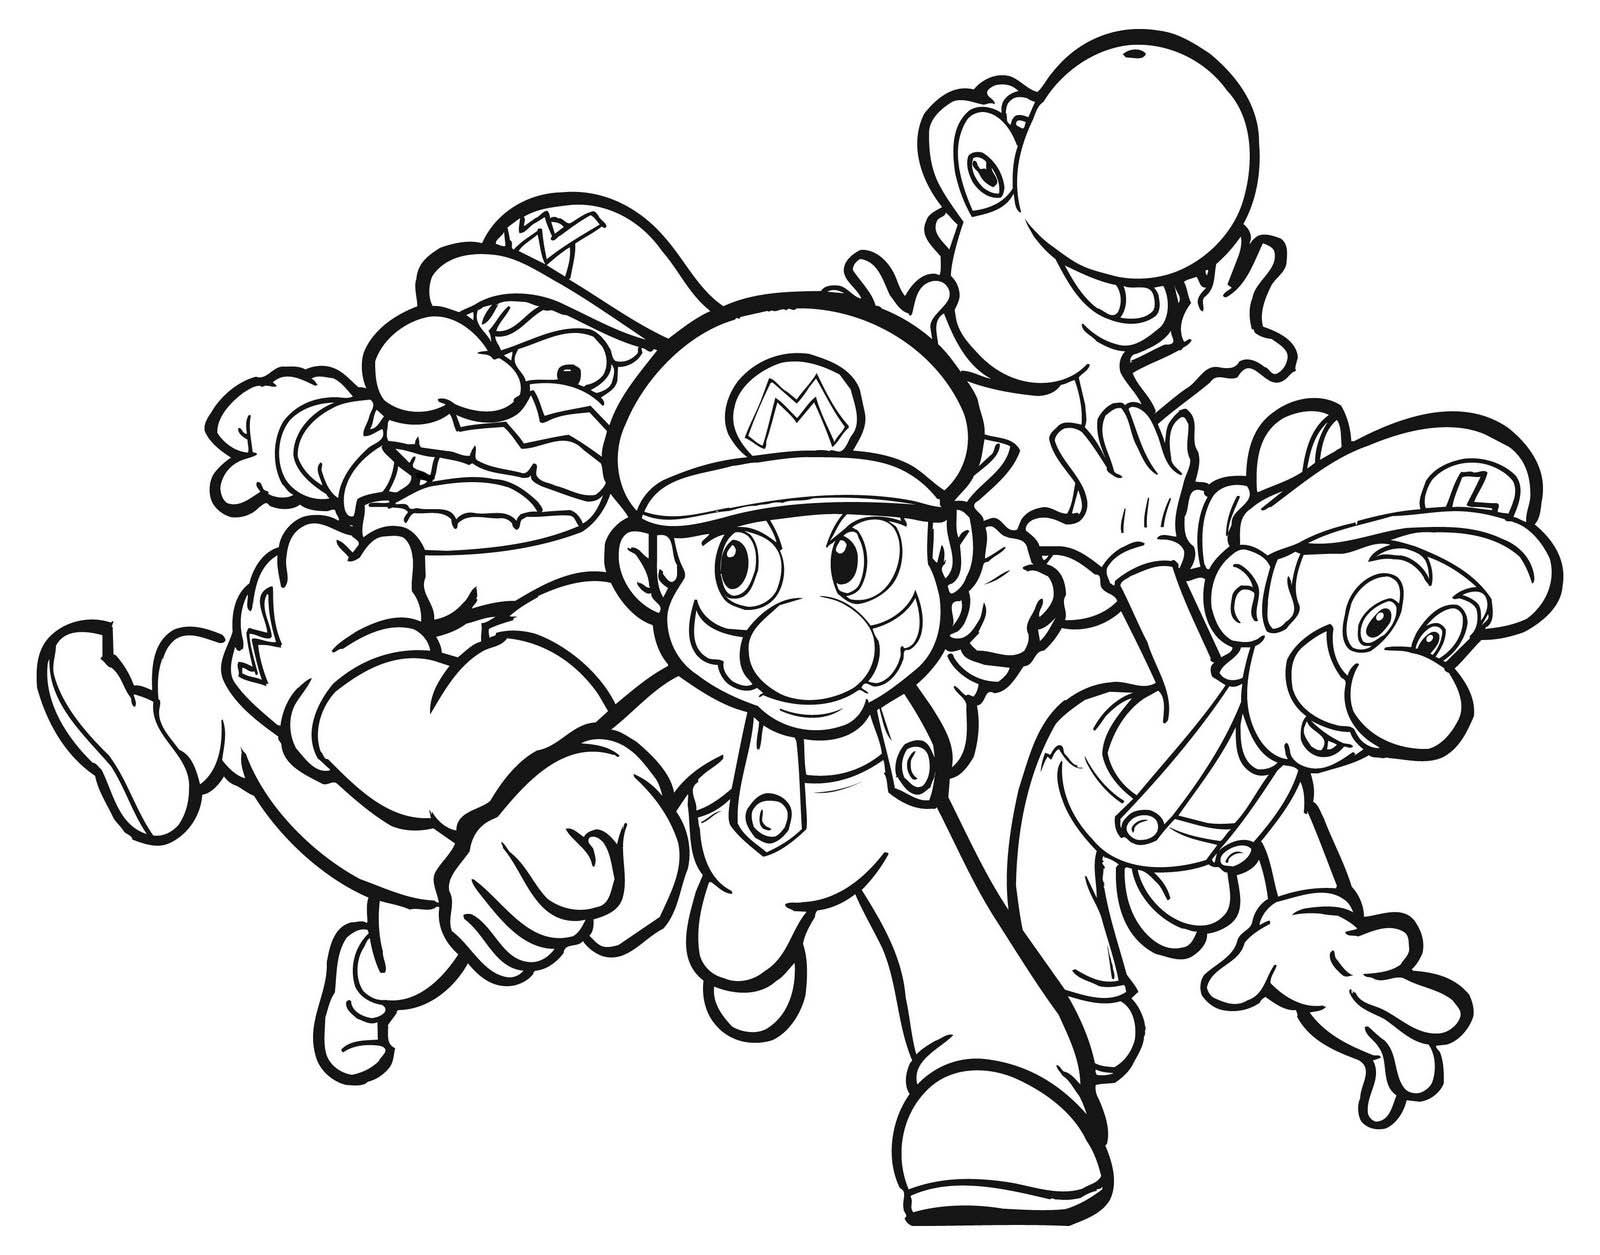 Free Printable Mario Coloring Pages For Kids Abstract Coloring Pages Mario Coloring Pages Super Mario Coloring Pages